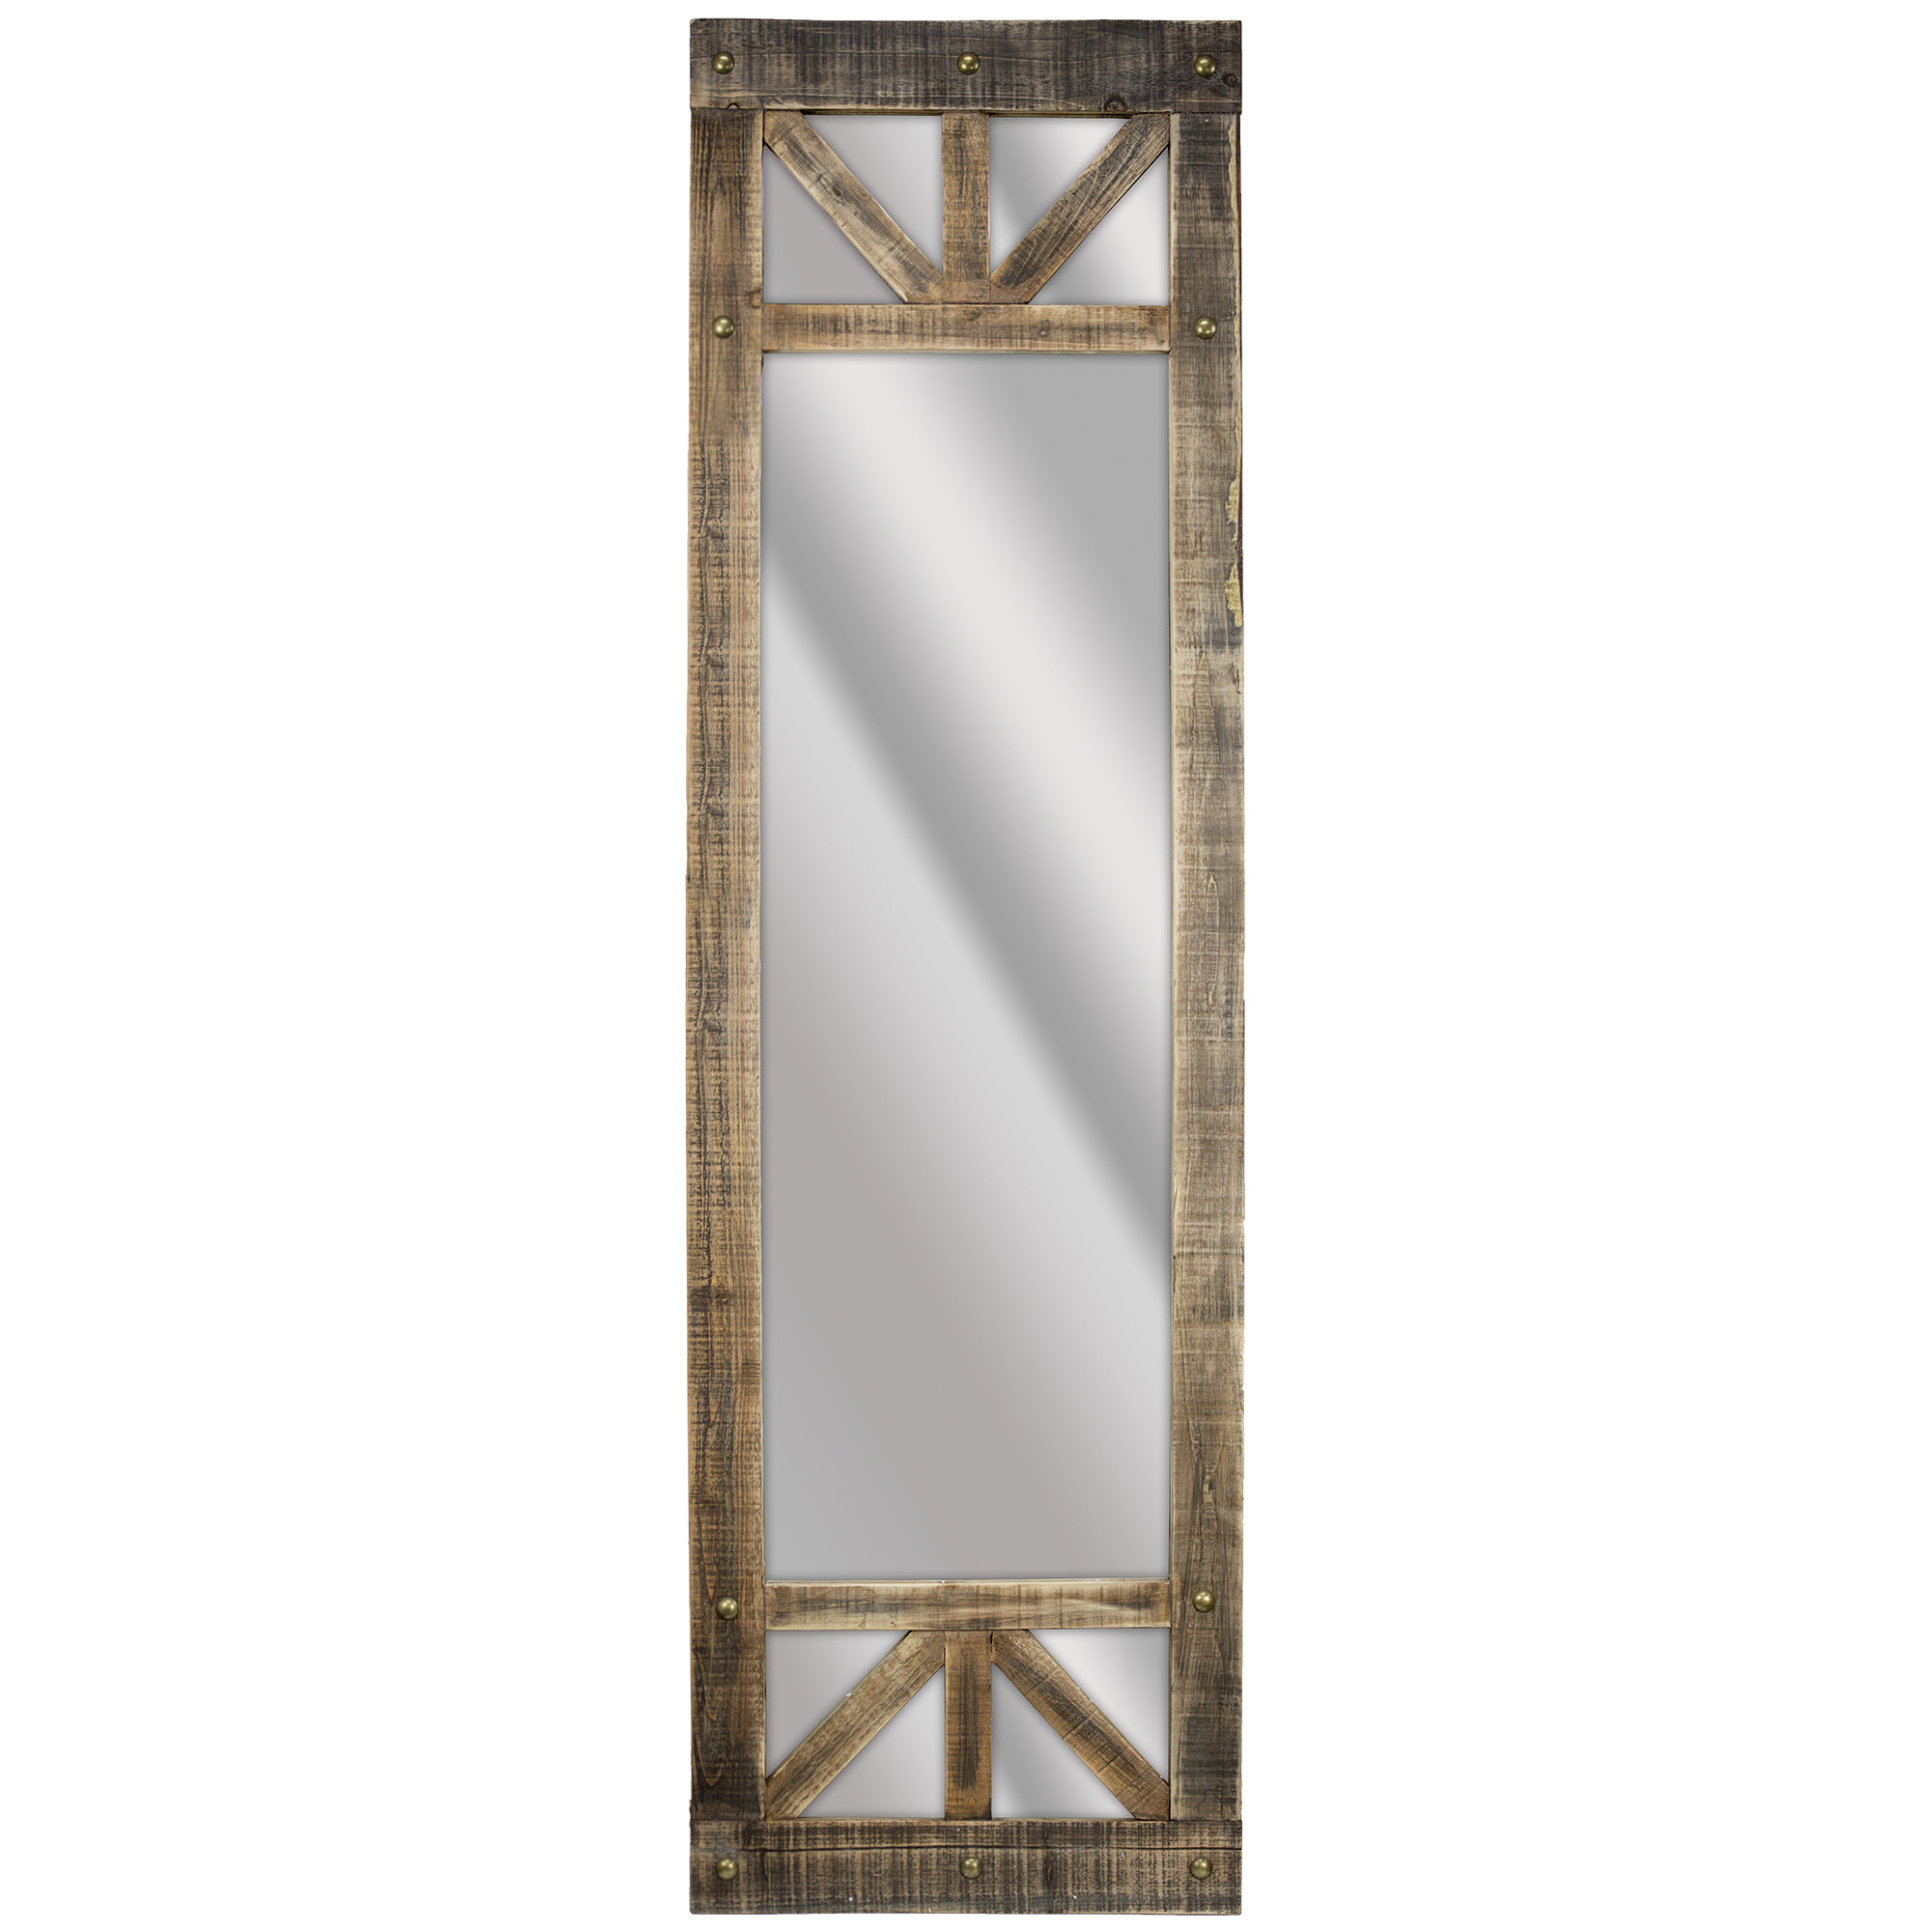 Rustic Wood Wall Mirrors Within Recent Delicia Décor Rustic Wood Full Length Wall Mirror (View 14 of 20)